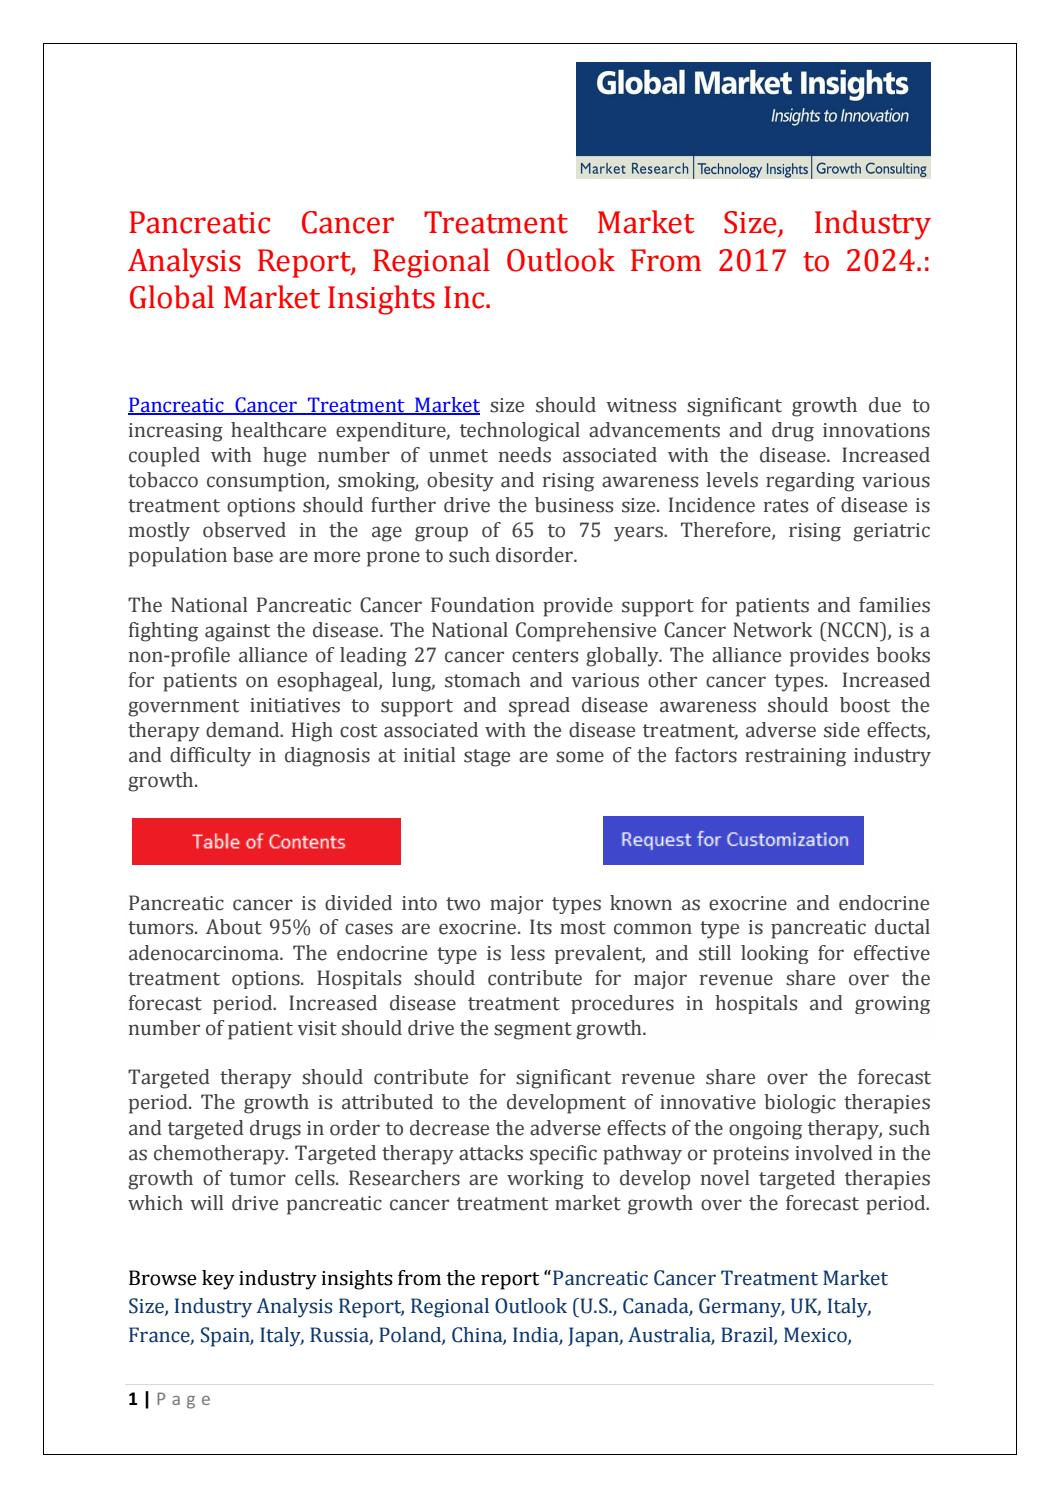 Pancreatic Cancer Treatment Market forecast to witness